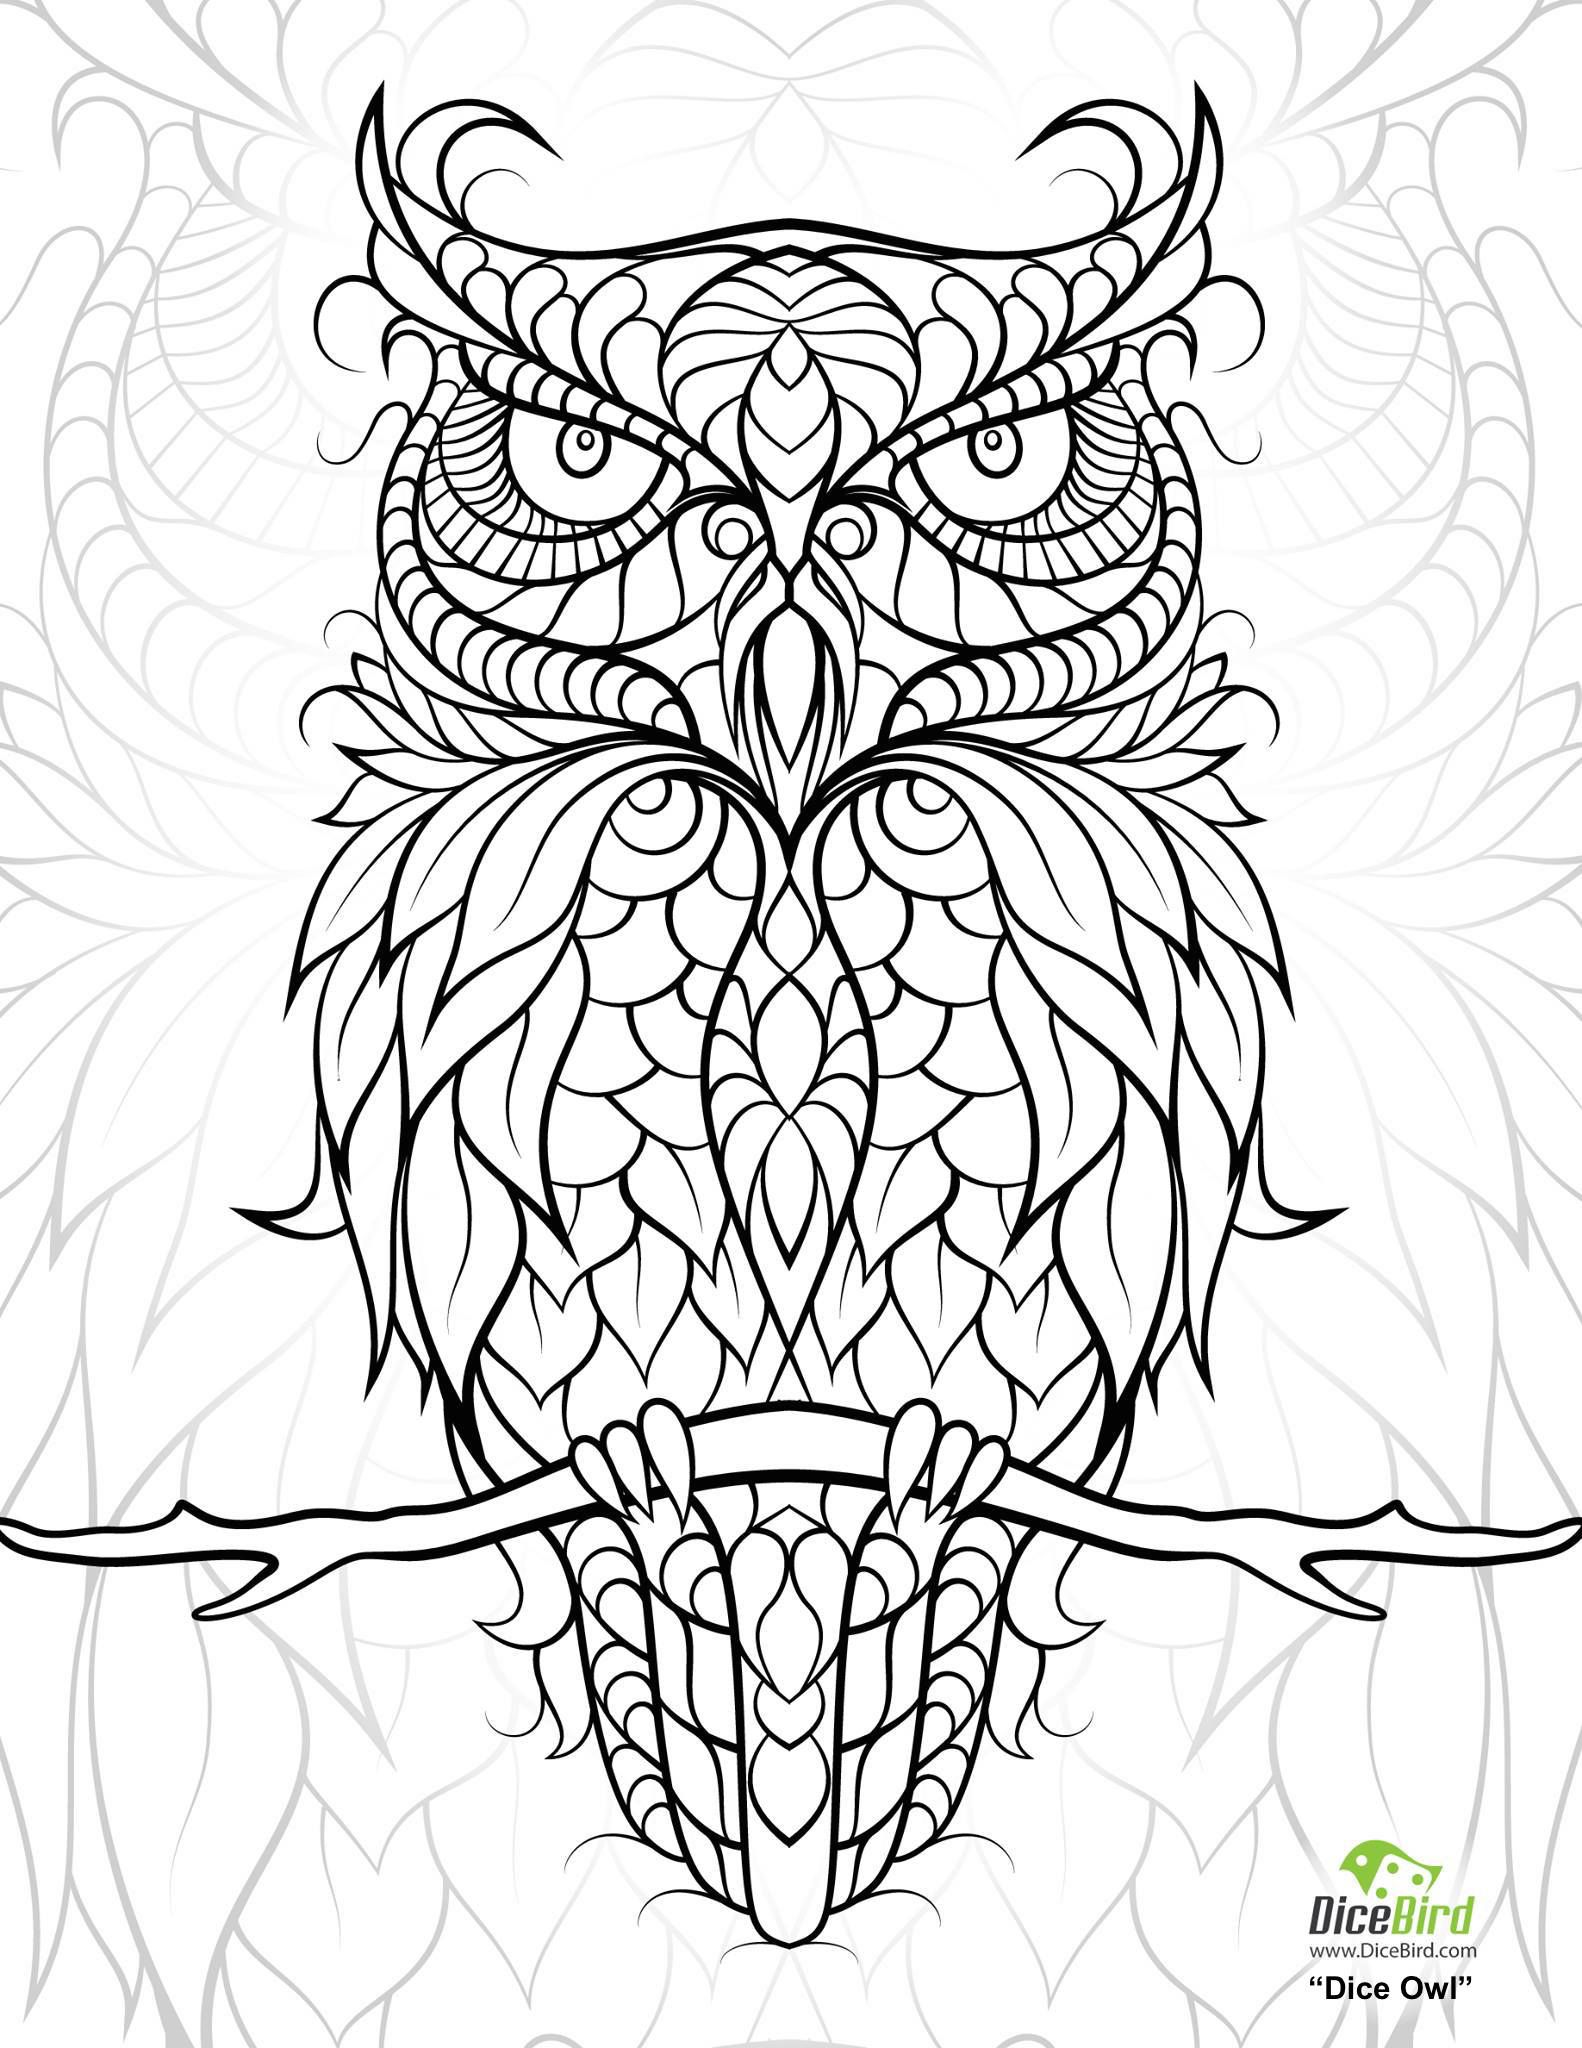 diceowl-free printable adult coloring pages | Pinterest | Adult ...